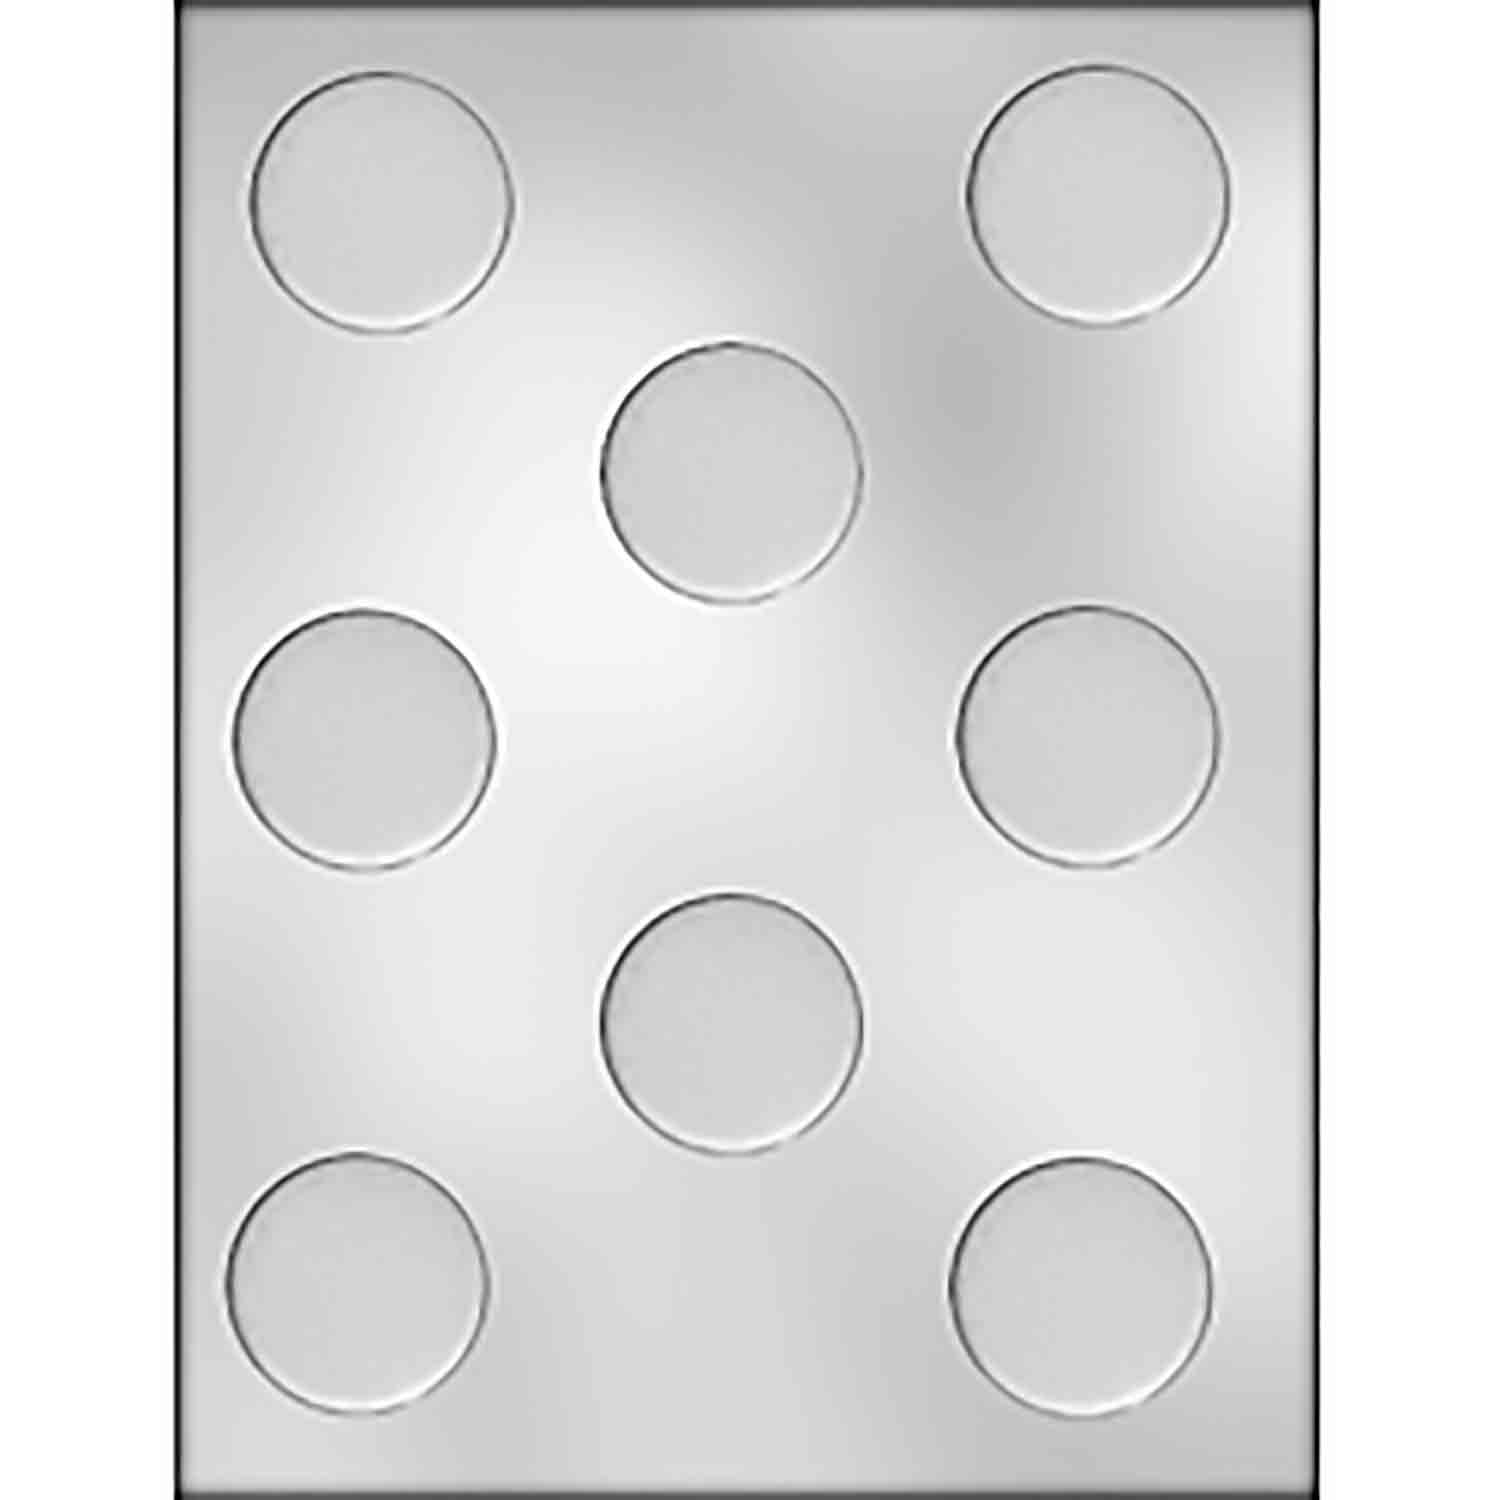 Plain Circle Mint Chocolate Candy Mold